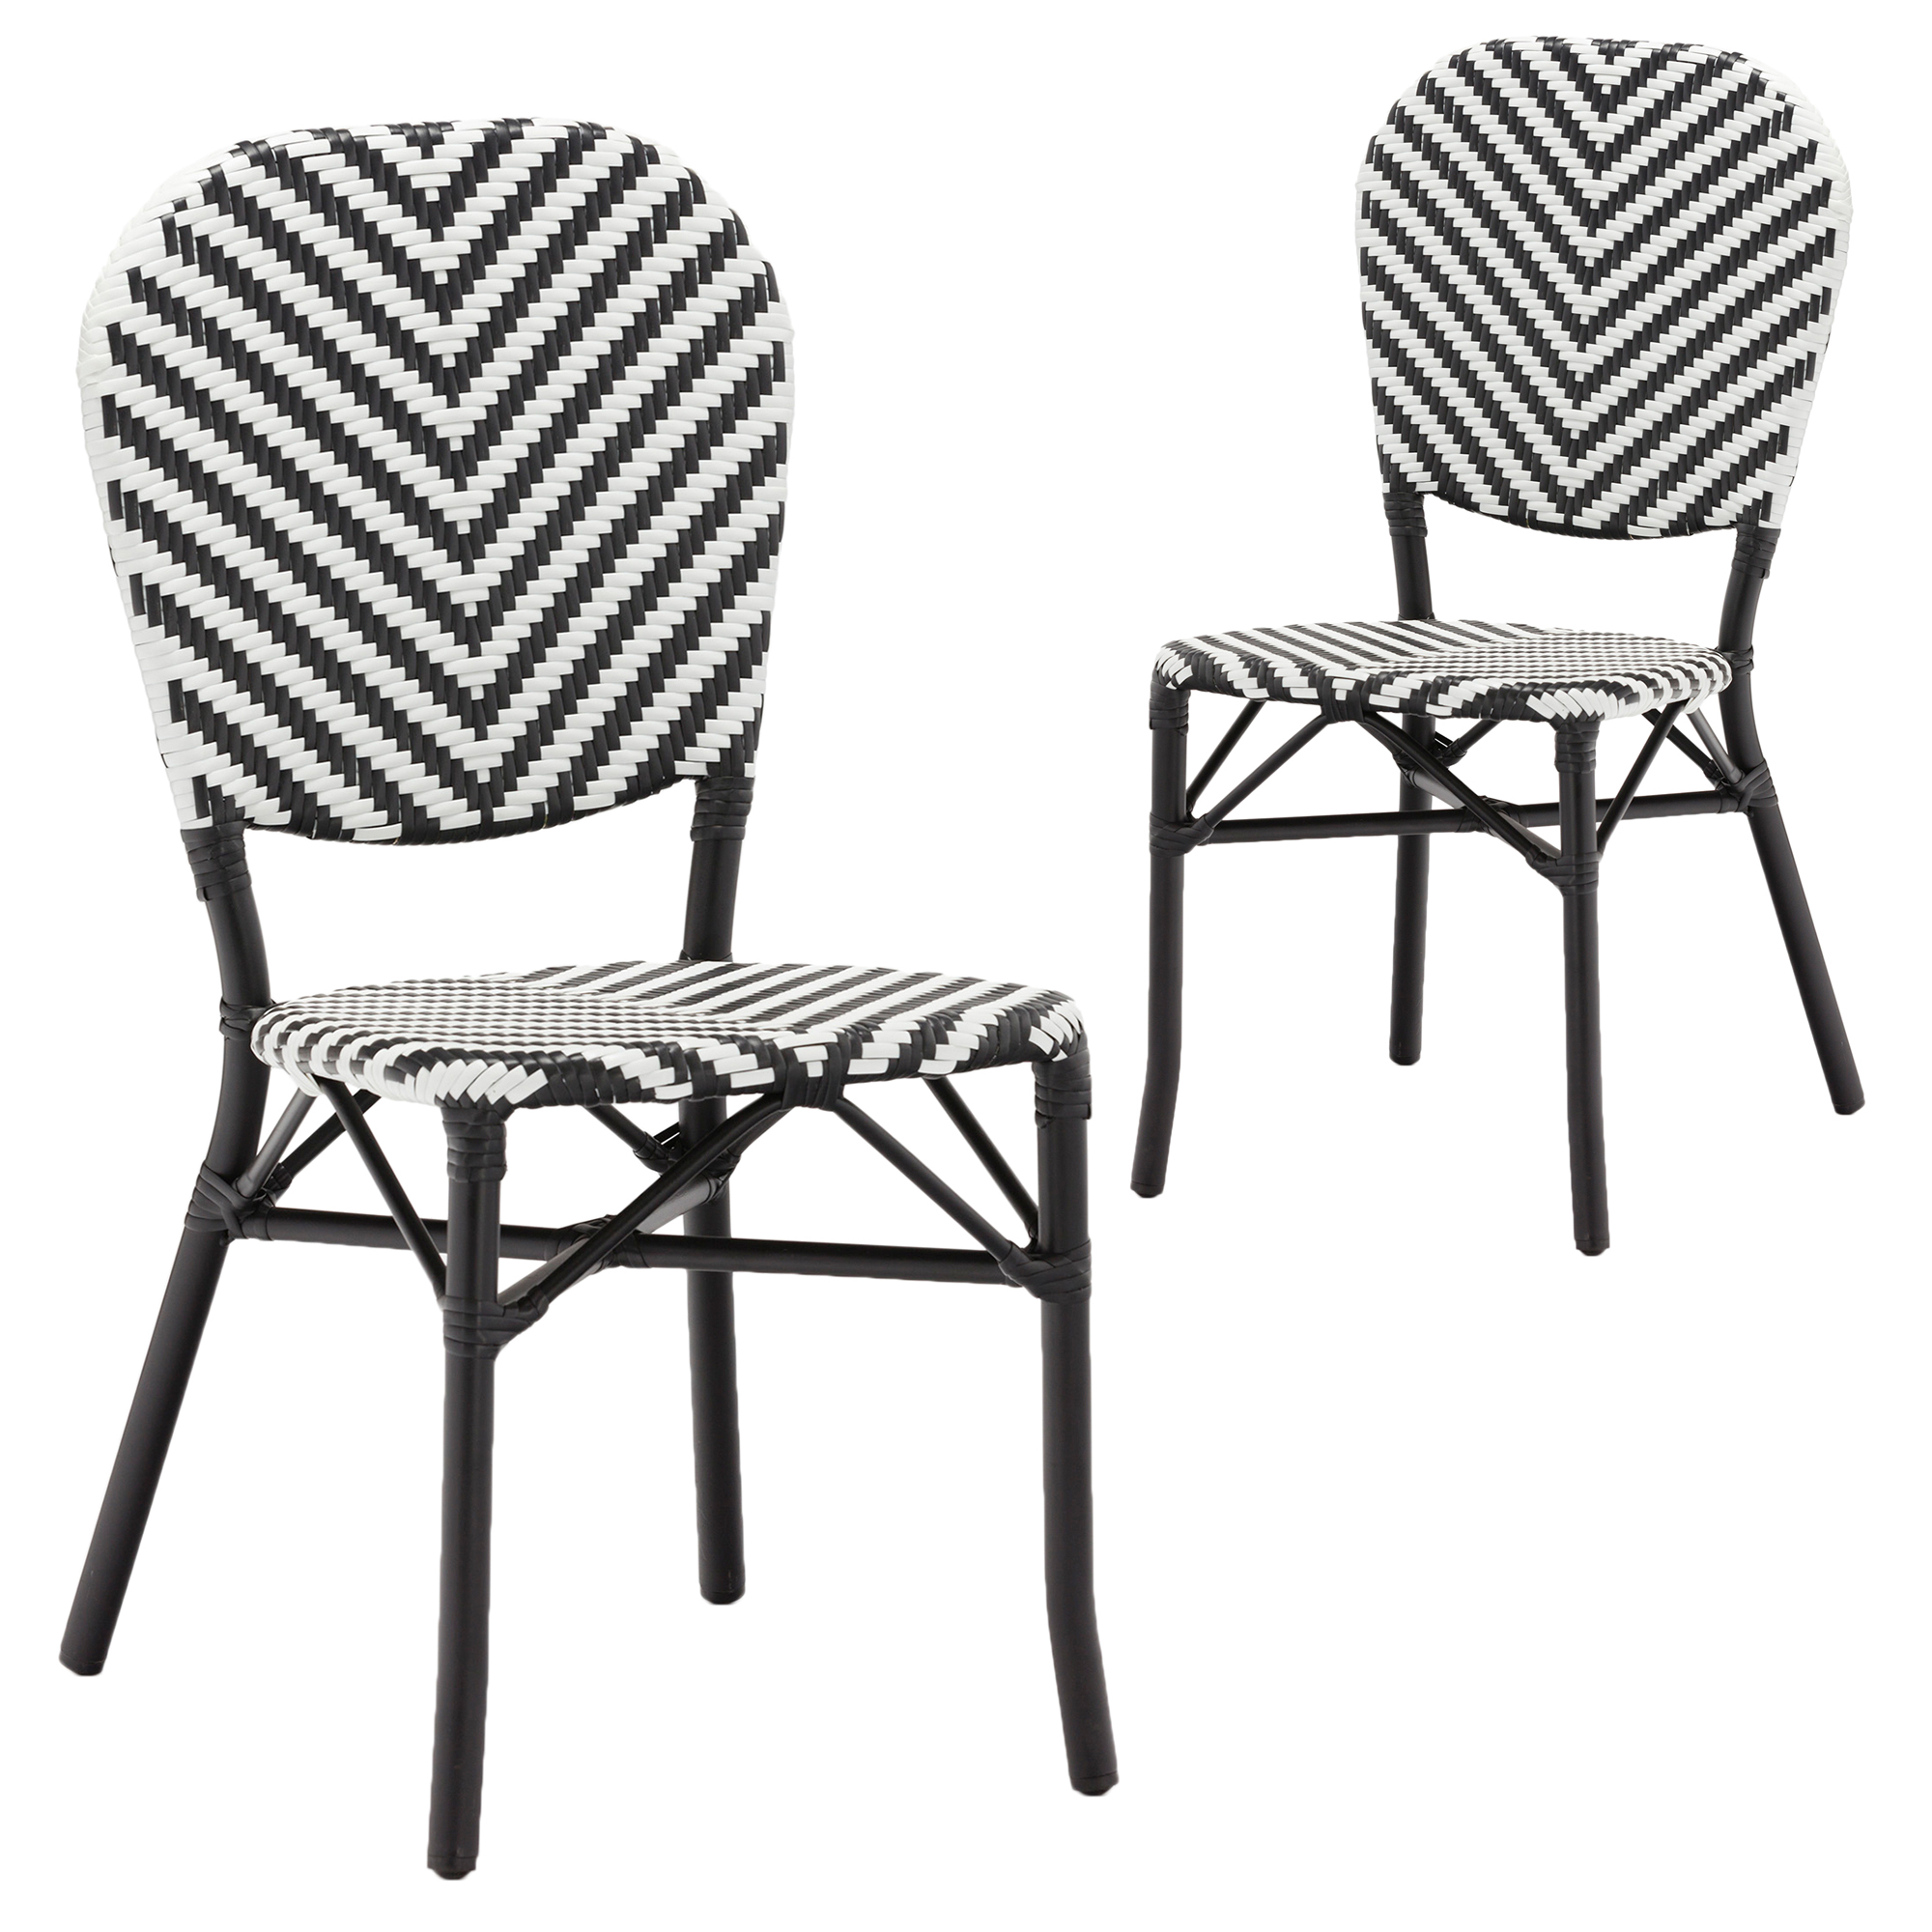 SKU #TPWT2719 Black Paris Faux Wicker Cafe Dining Chairs Is Also Sometimes  Listed Under The Following Manufacturer Numbers: BQPSDBWW